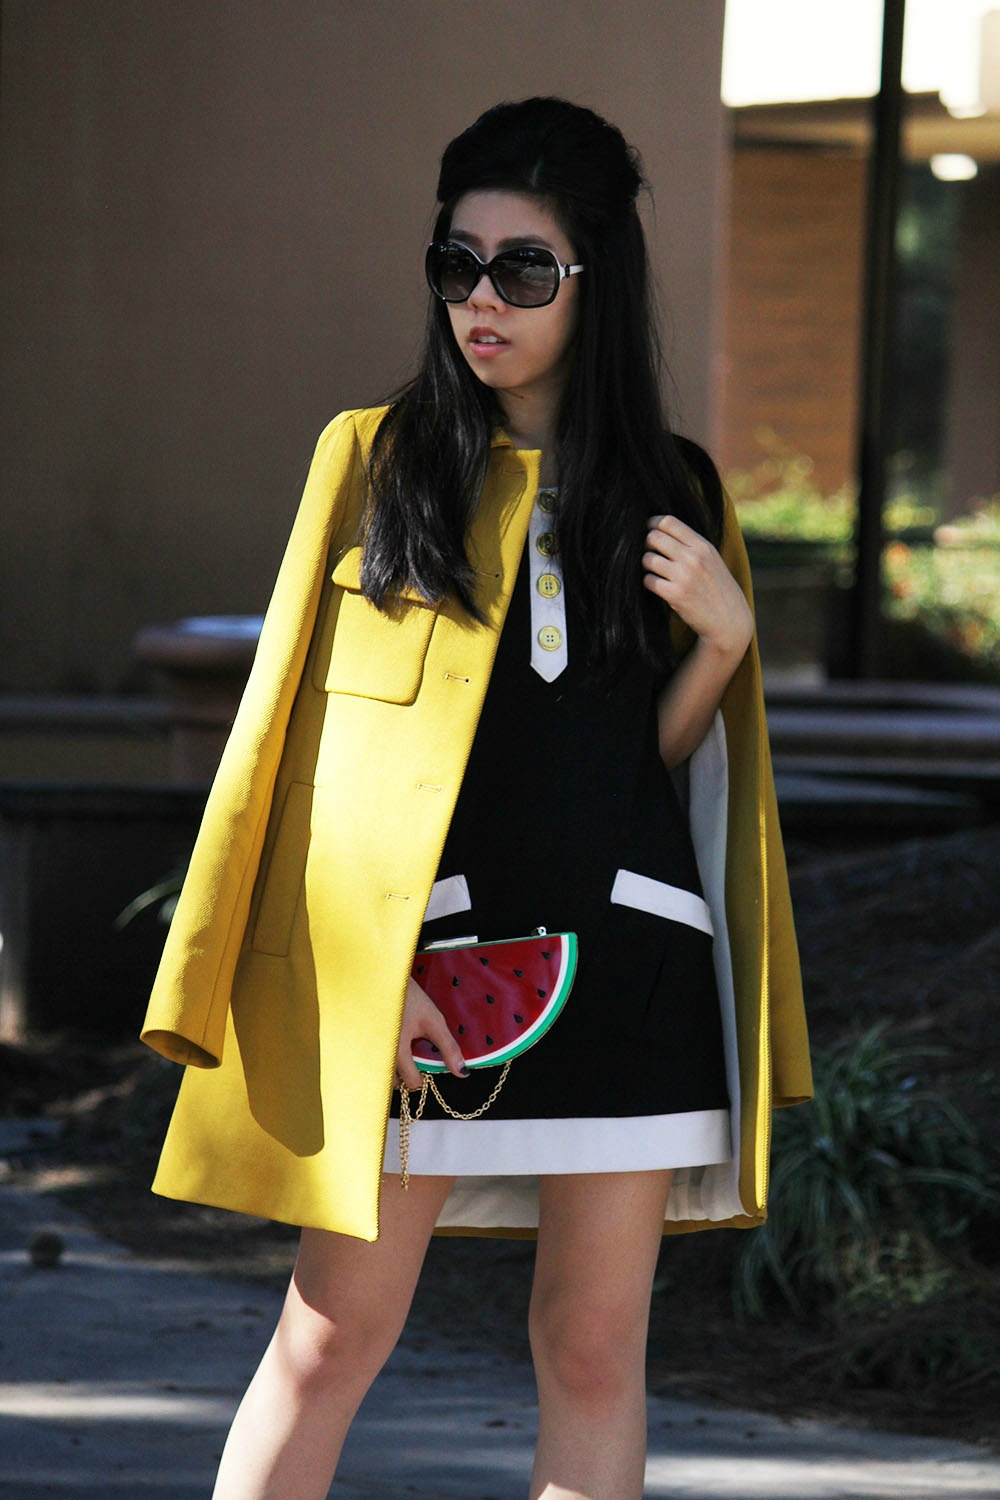 Adrienne Nguyen_Invictus_What to wear with block heels_Petite fashion blogger_vietnamese fashion blogger